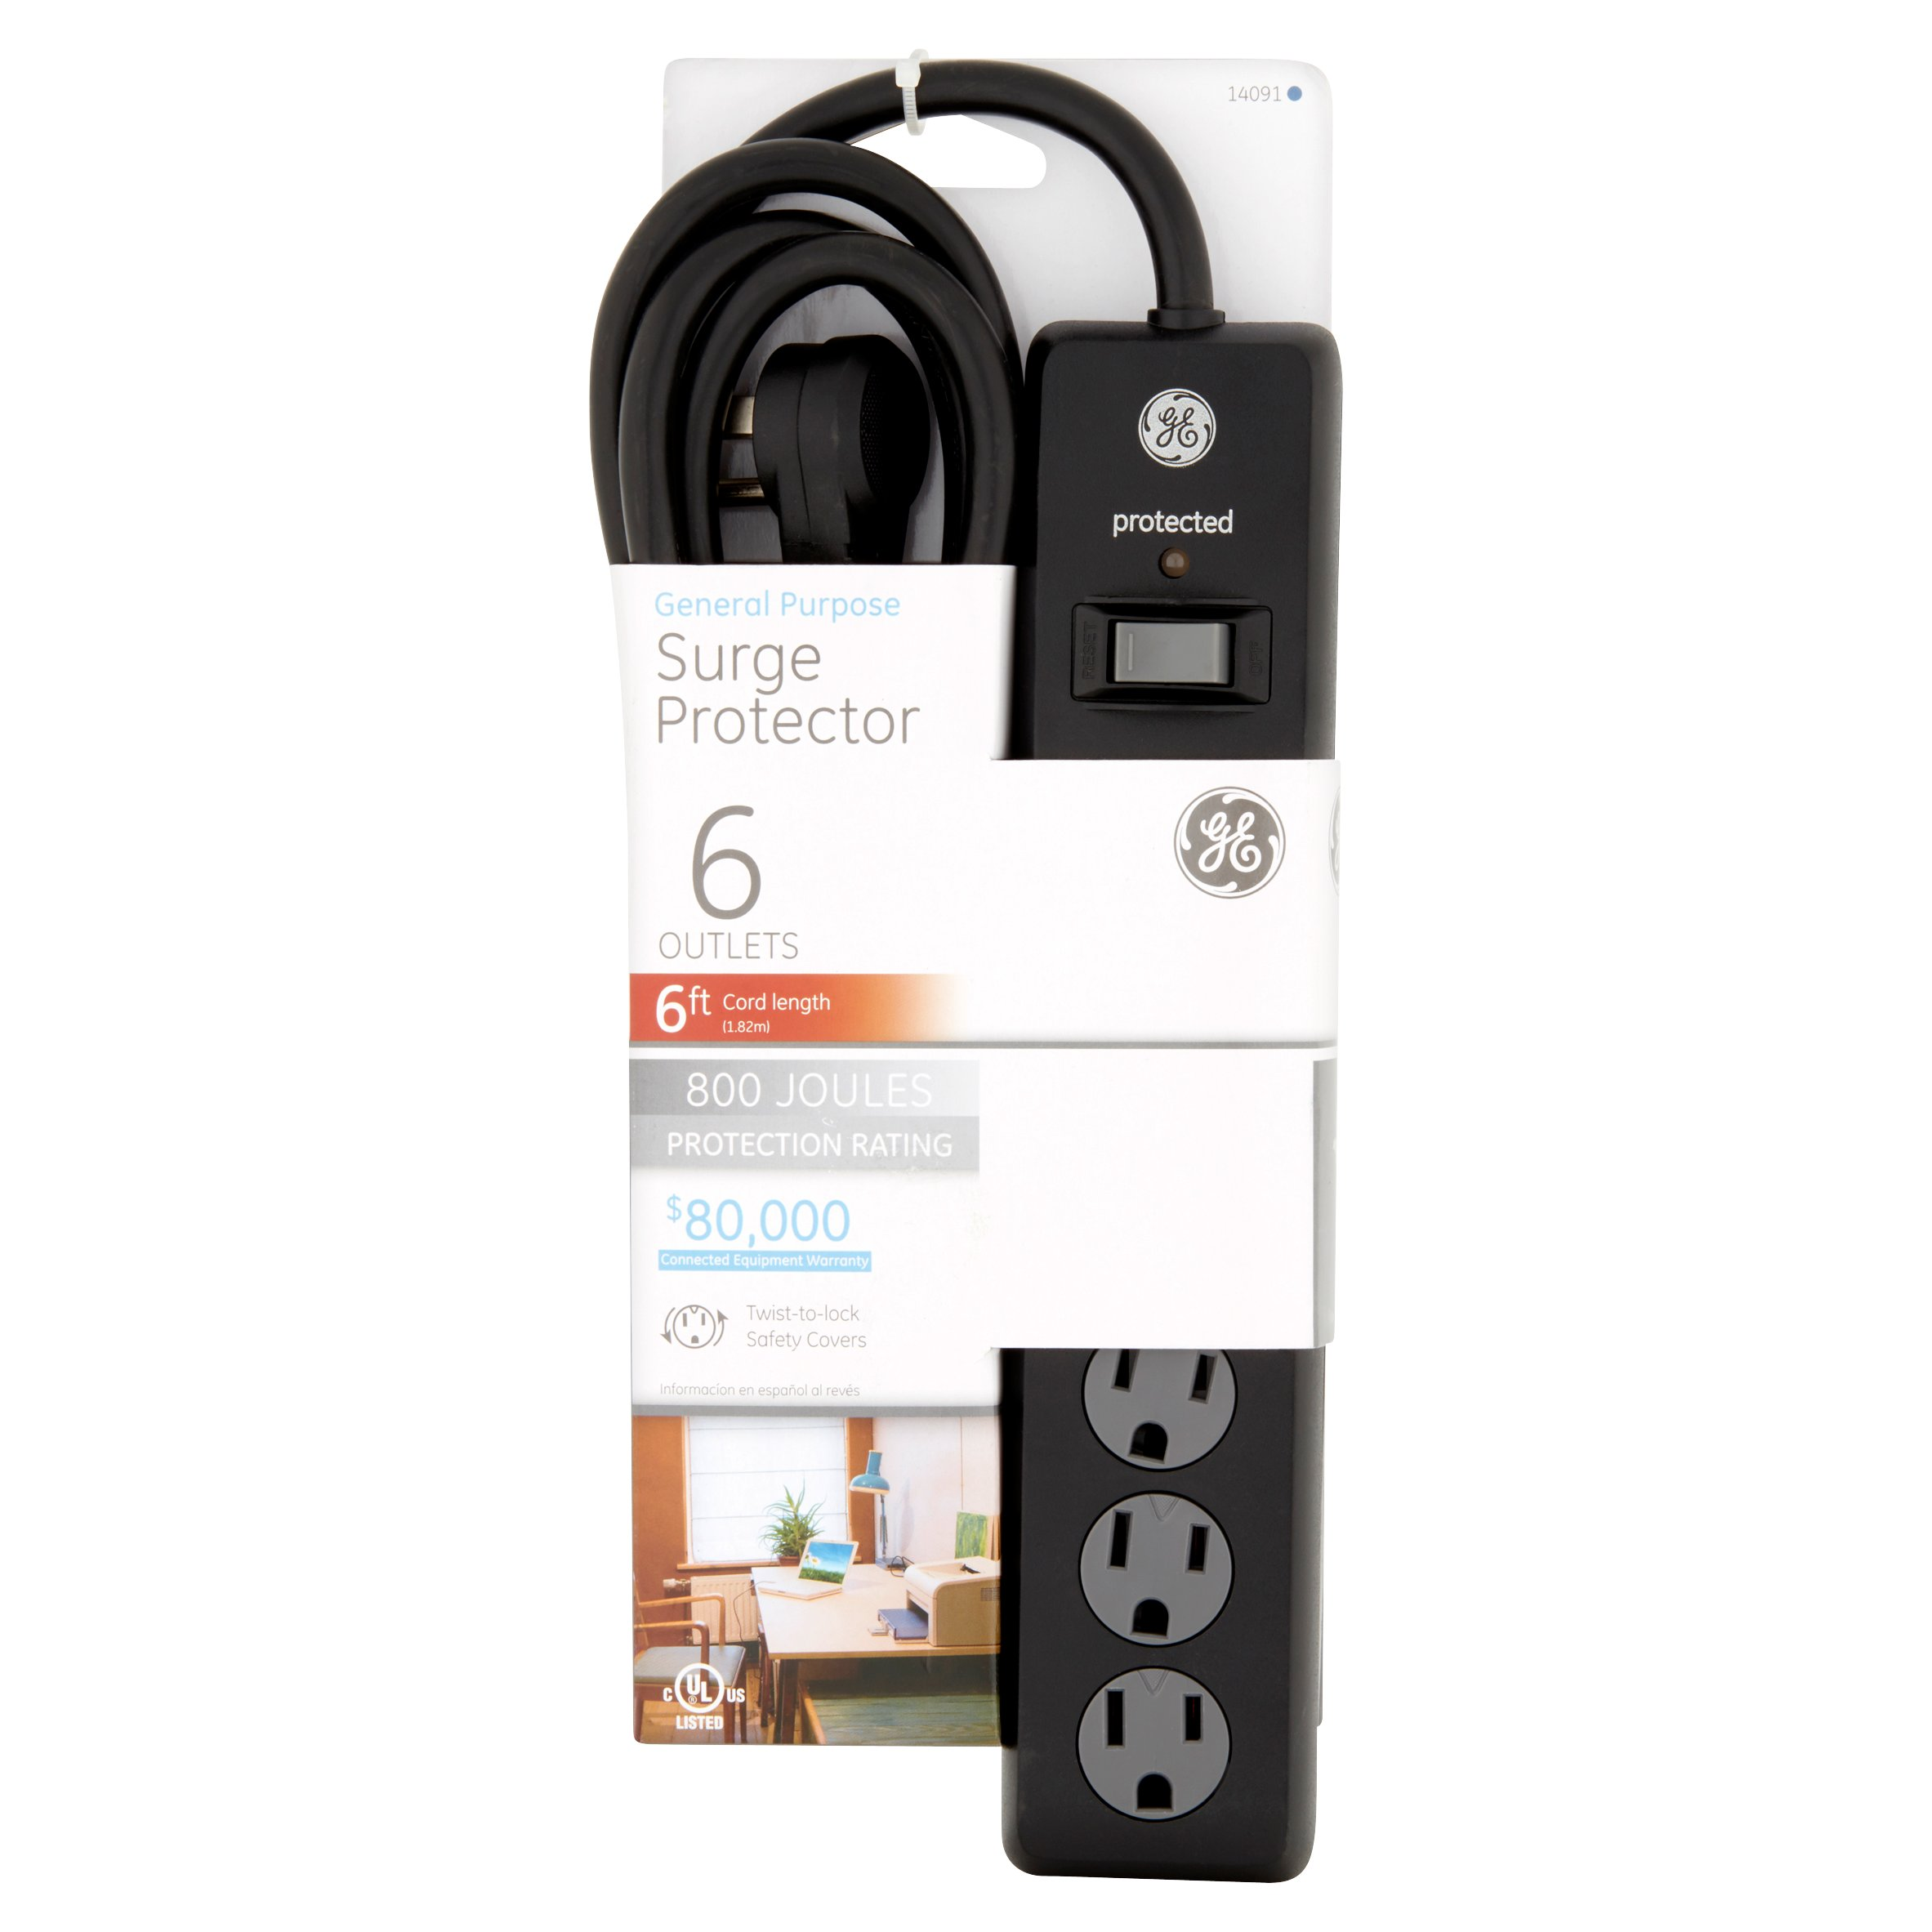 GE General Purpose Surge Protector 6 Outlets, 6 ft